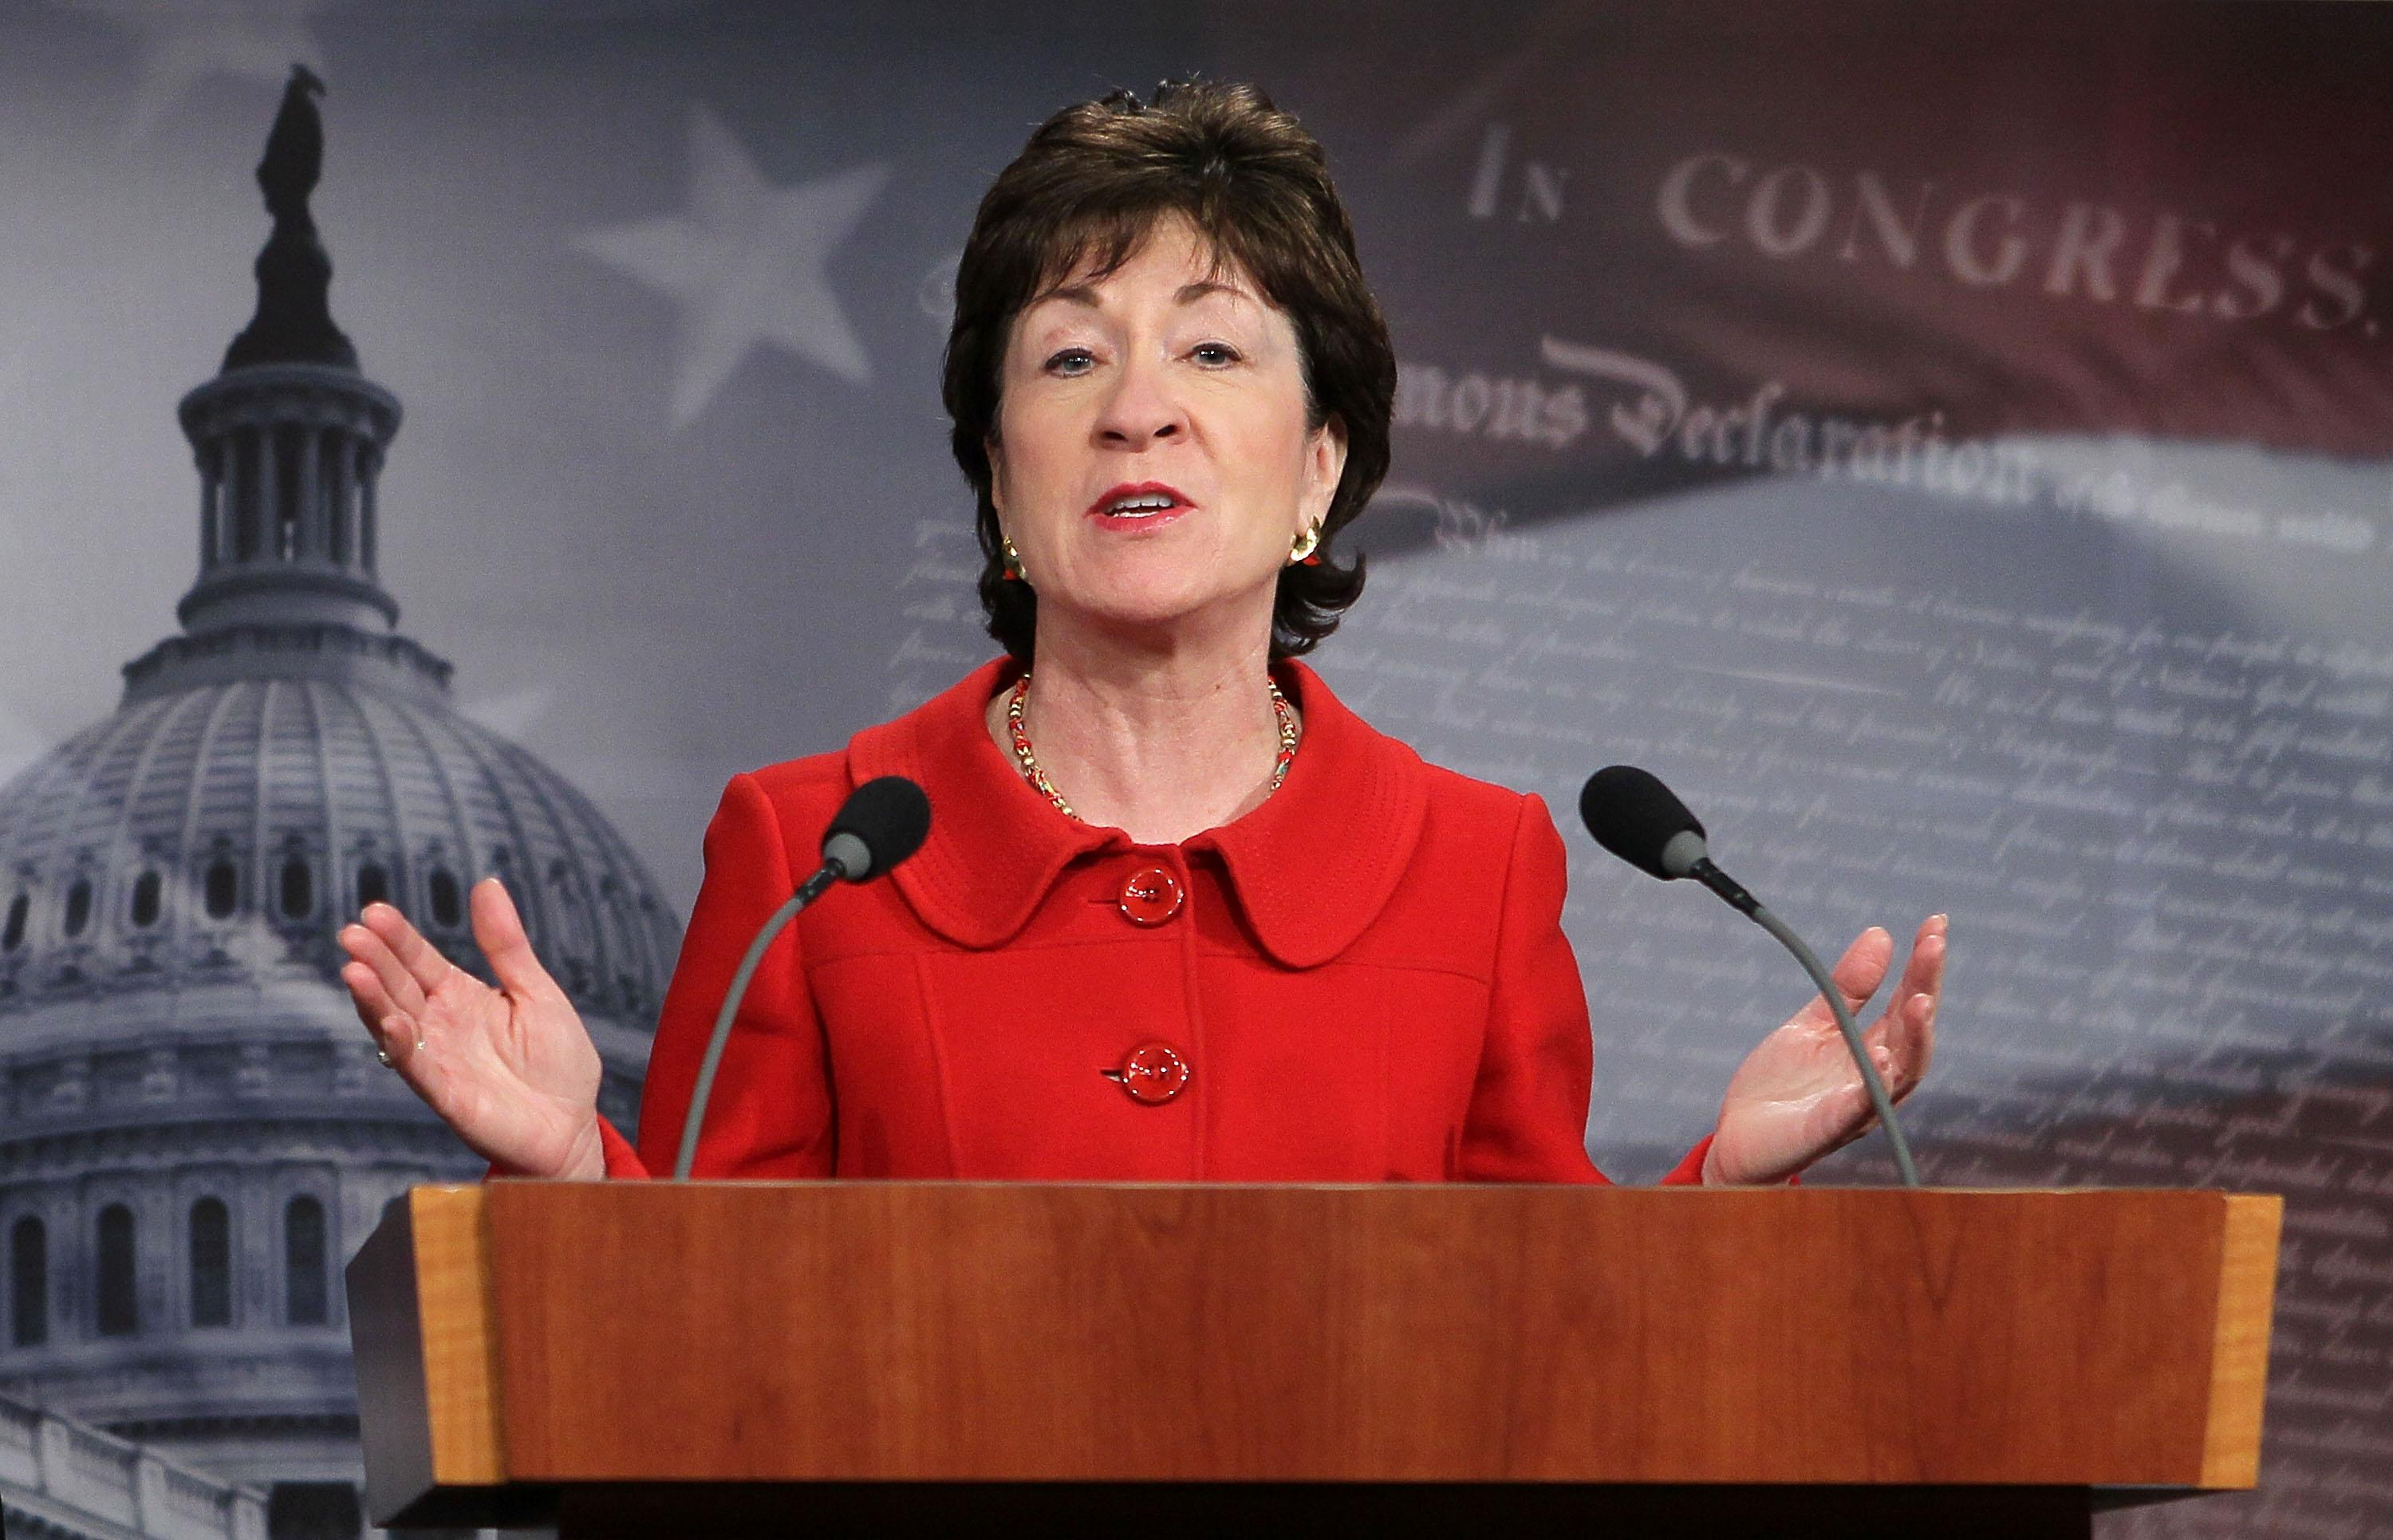 The move comes after Collins appeared to flipflop on whether she would vote for an antiabortion Supreme Court candidate